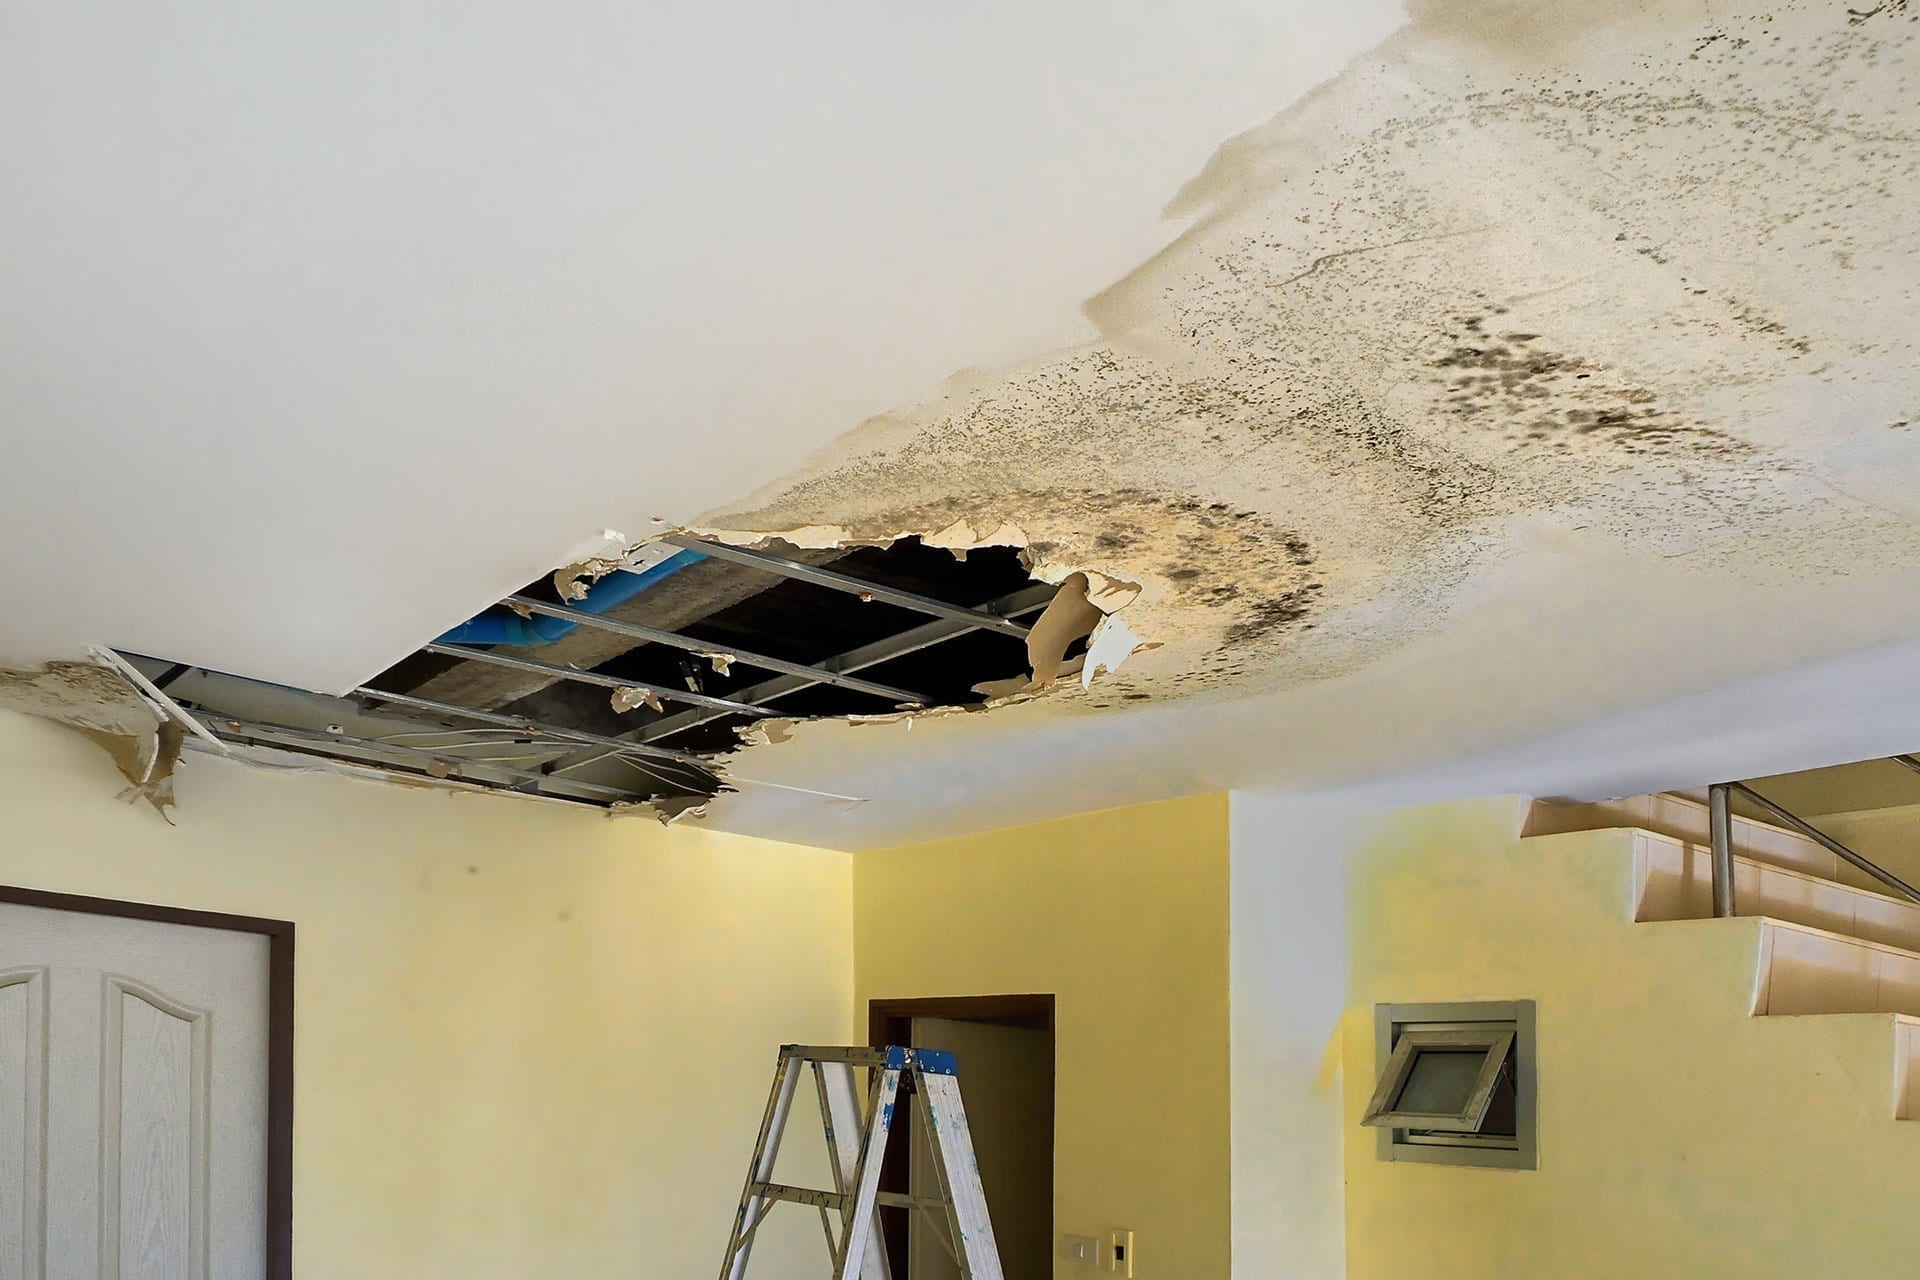 Ceiling Leak Repair in Lee's Summit MO Roof Leak Repair